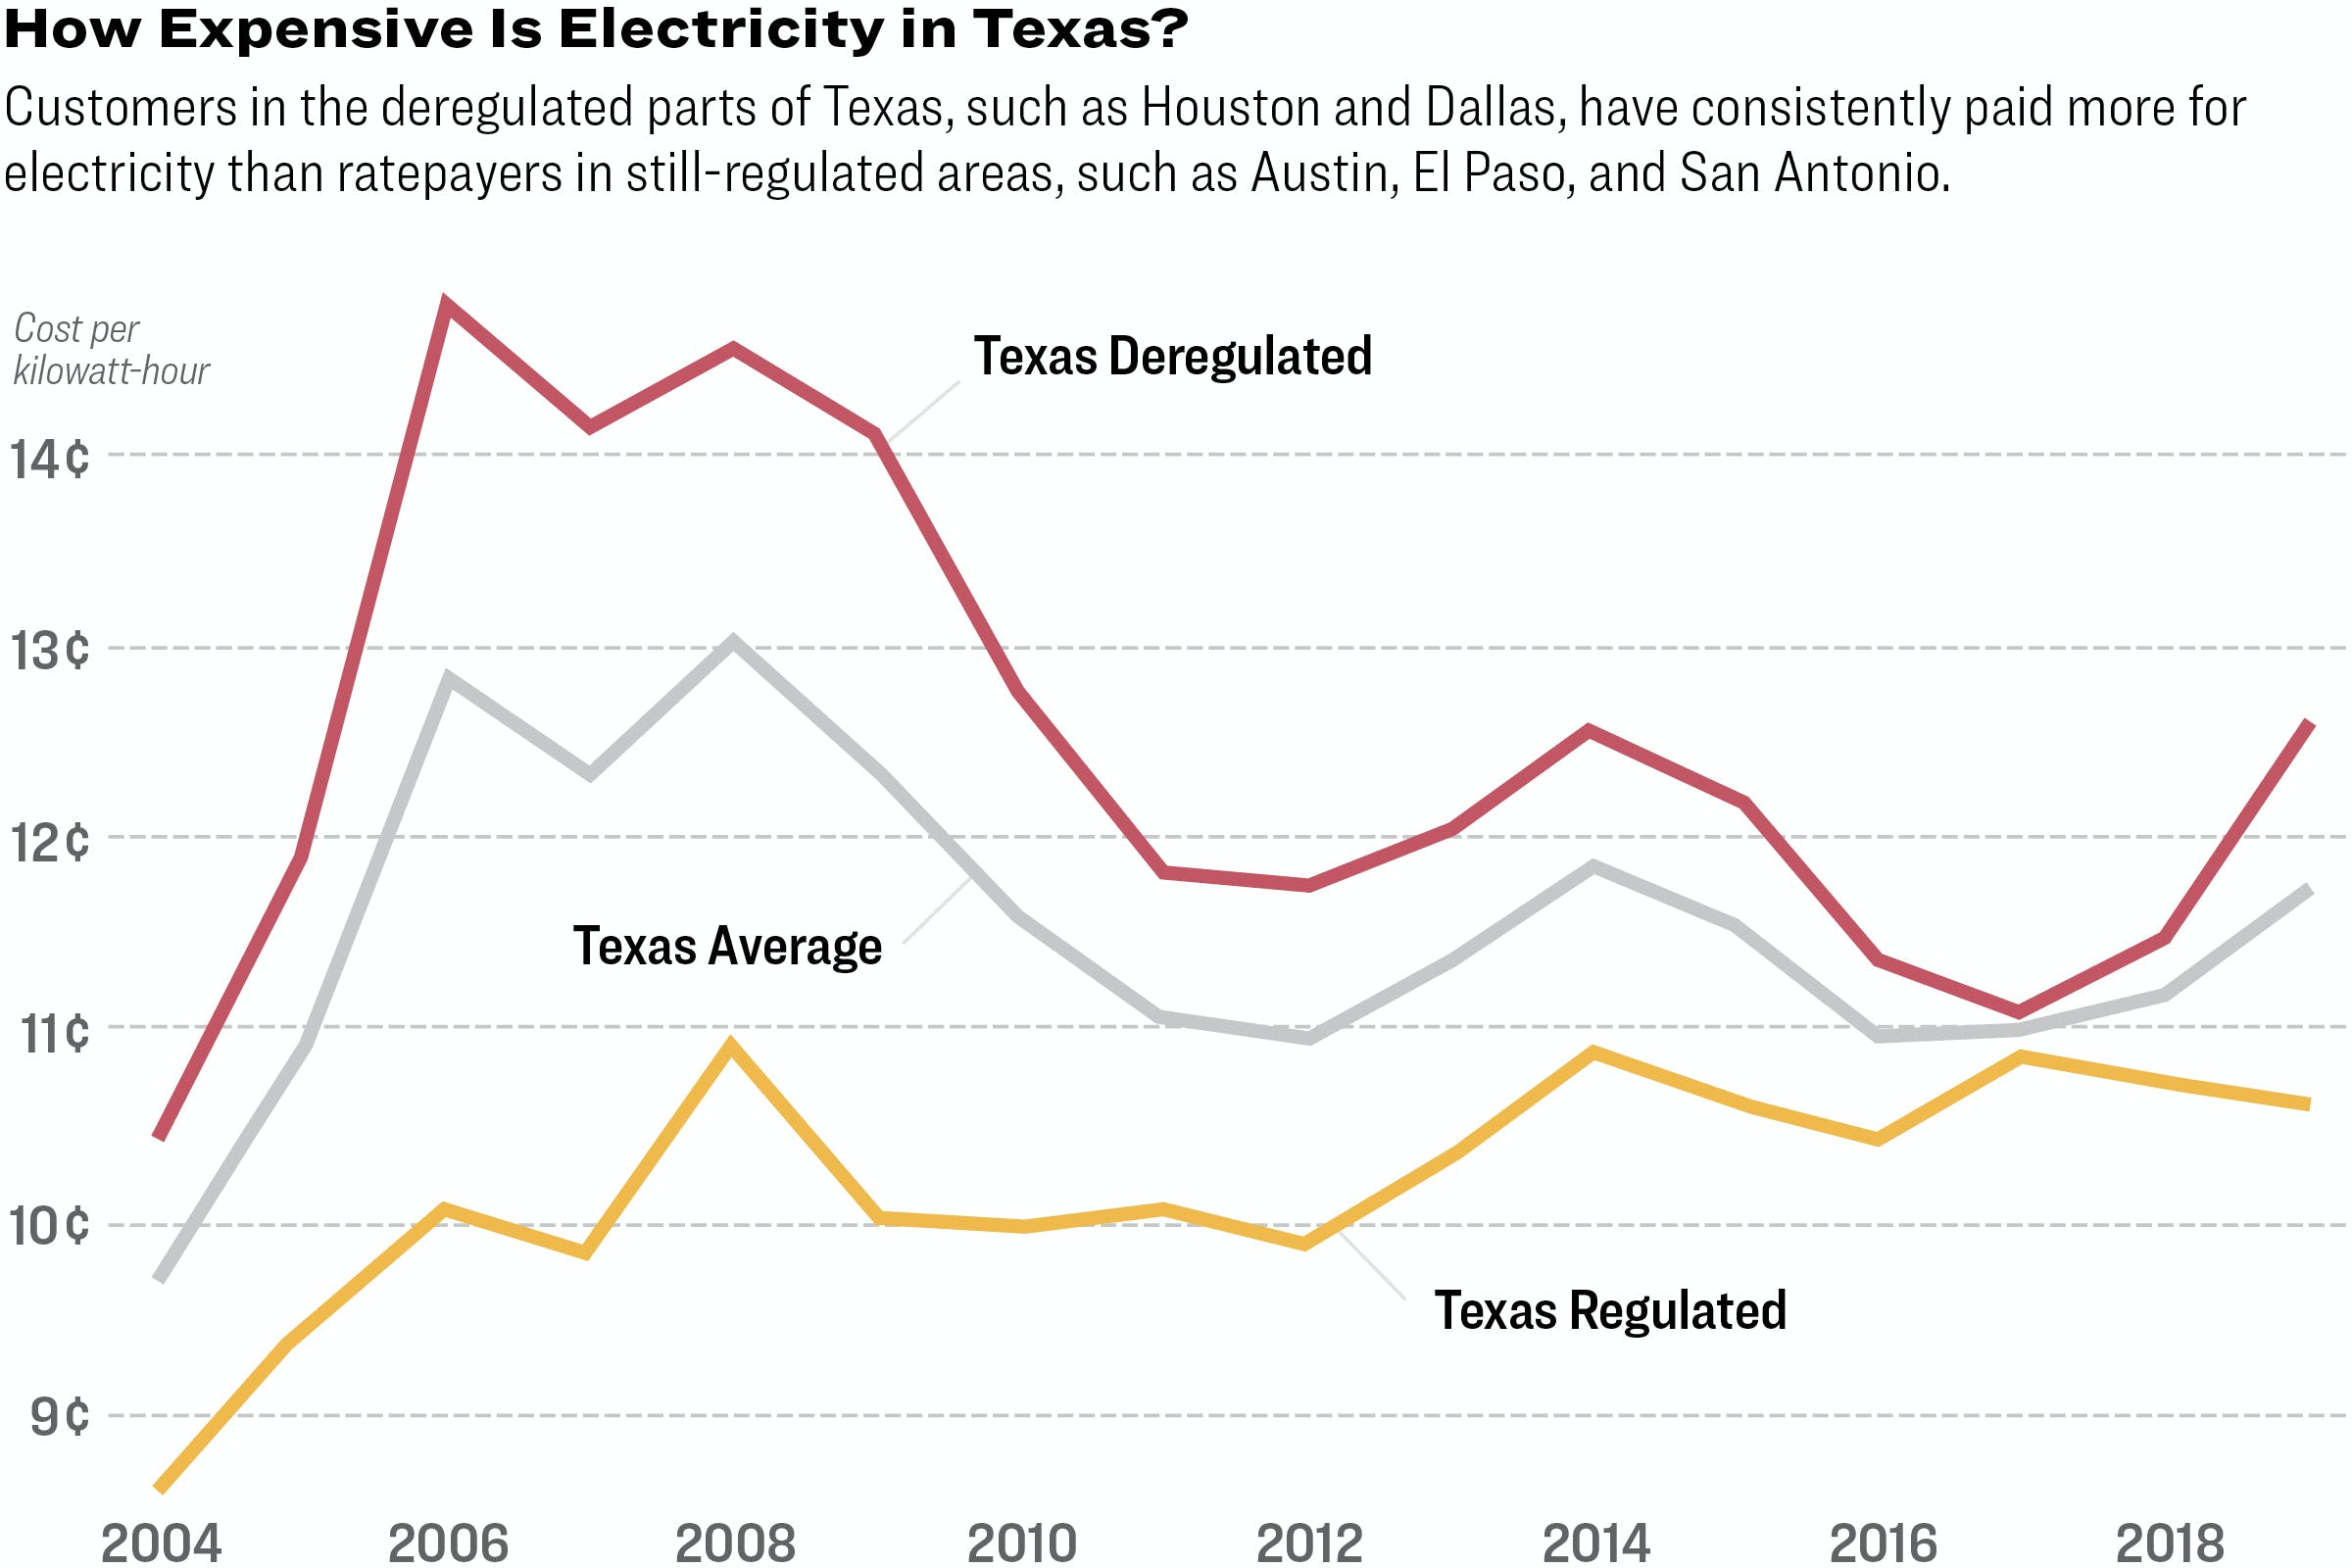 How Expensive Is Electricity in Texas?